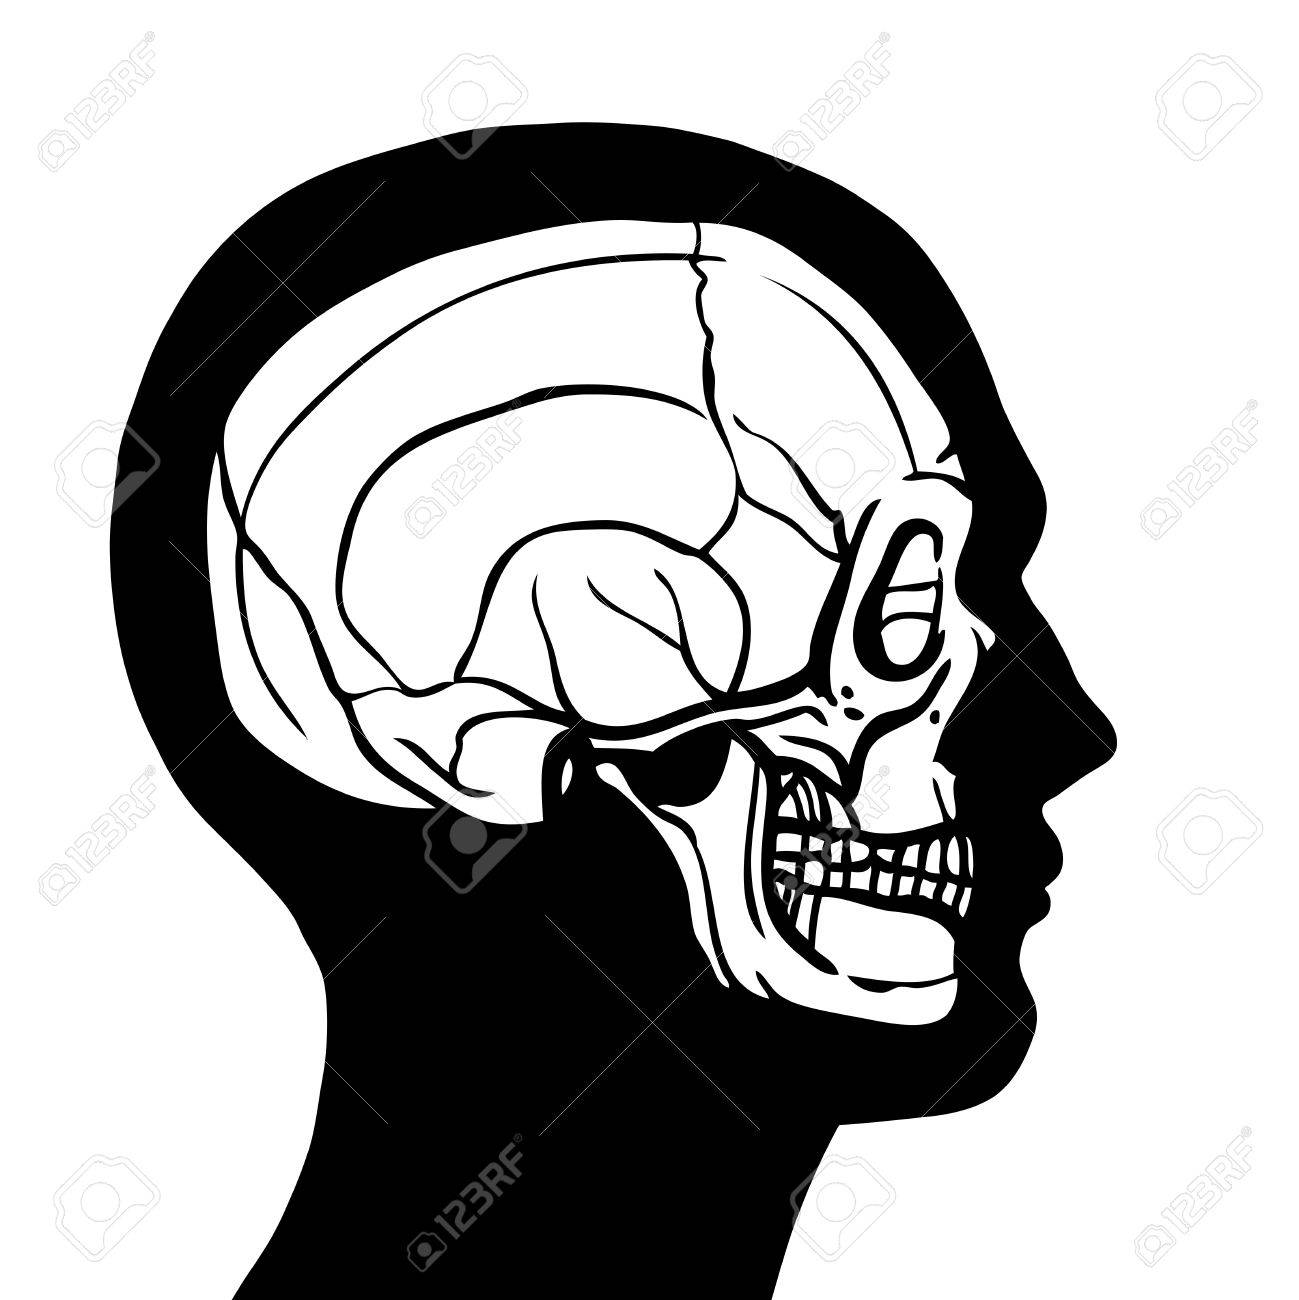 1299x1300 Human Head Profile Contour With Skull Inside Anatomy Concept